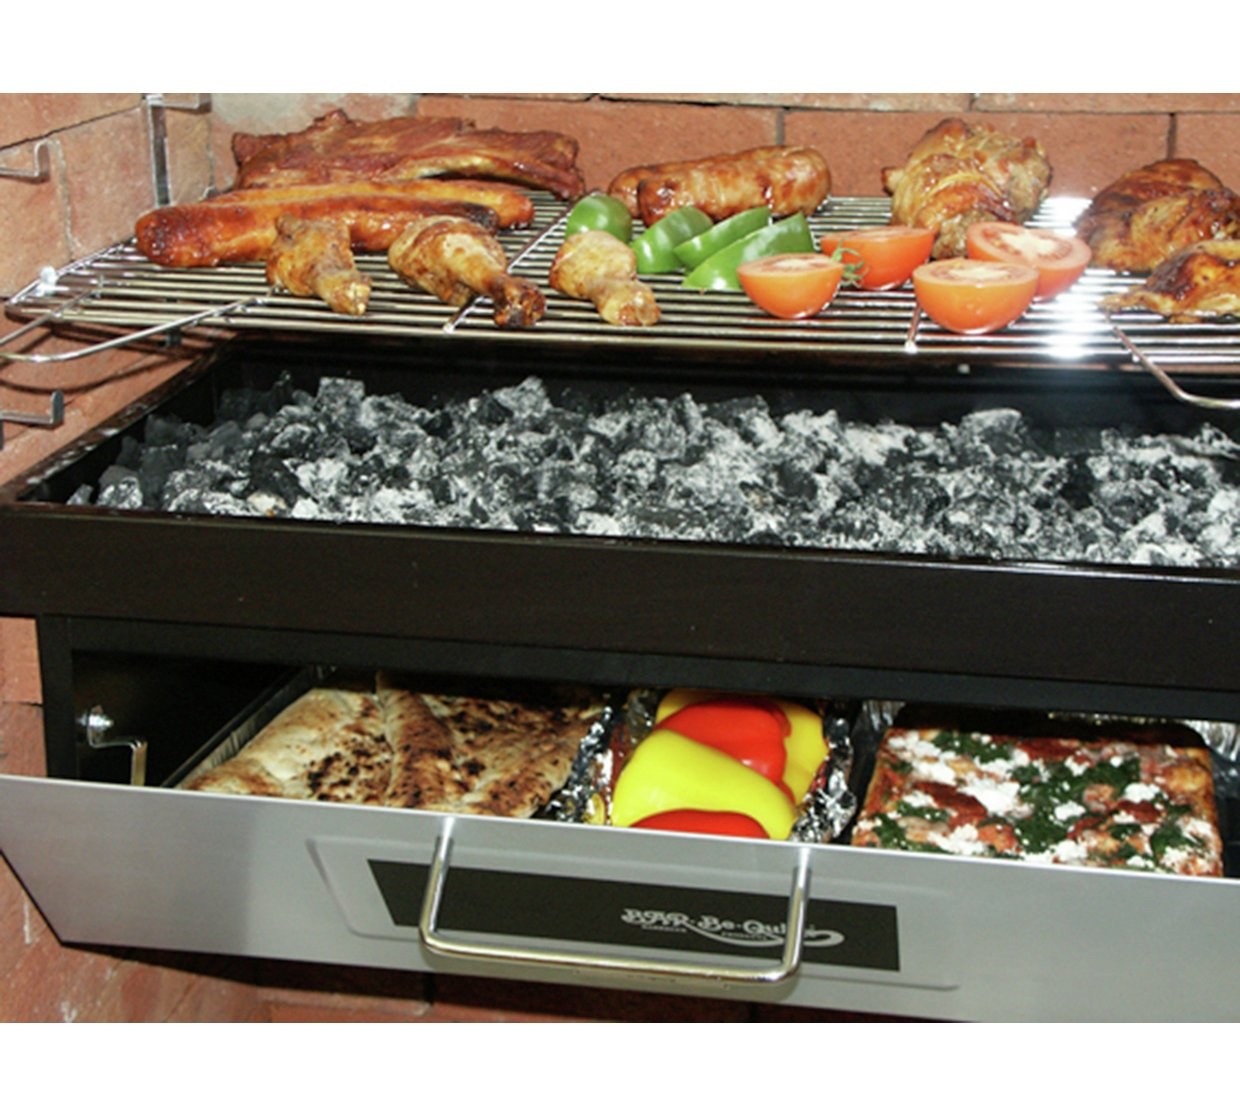 Build In Burner Barbeque BBQ, Pizza Oven, Grill, Outdoor ...